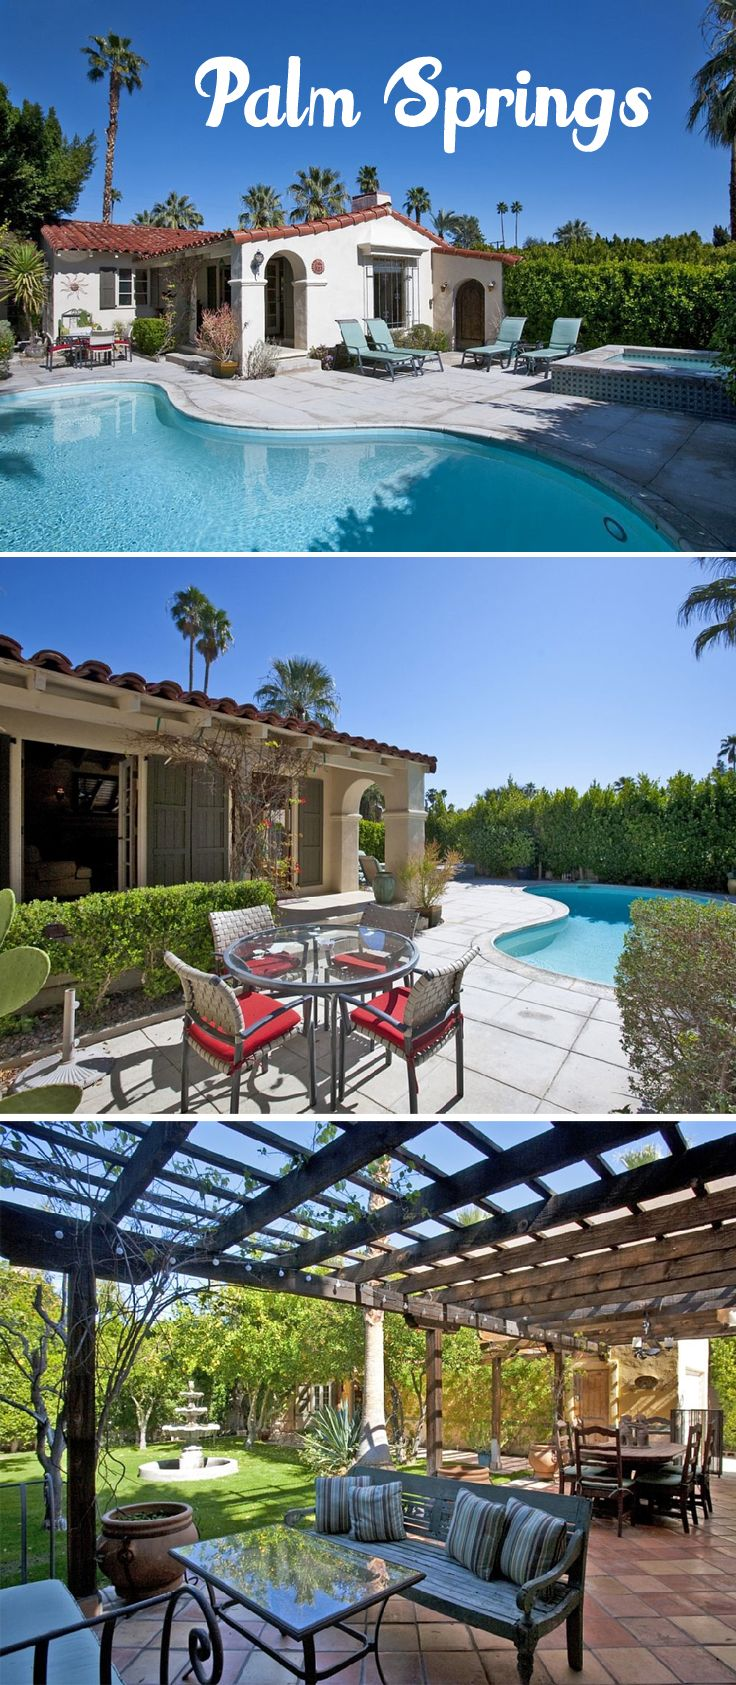 palm springs #vacation #travel